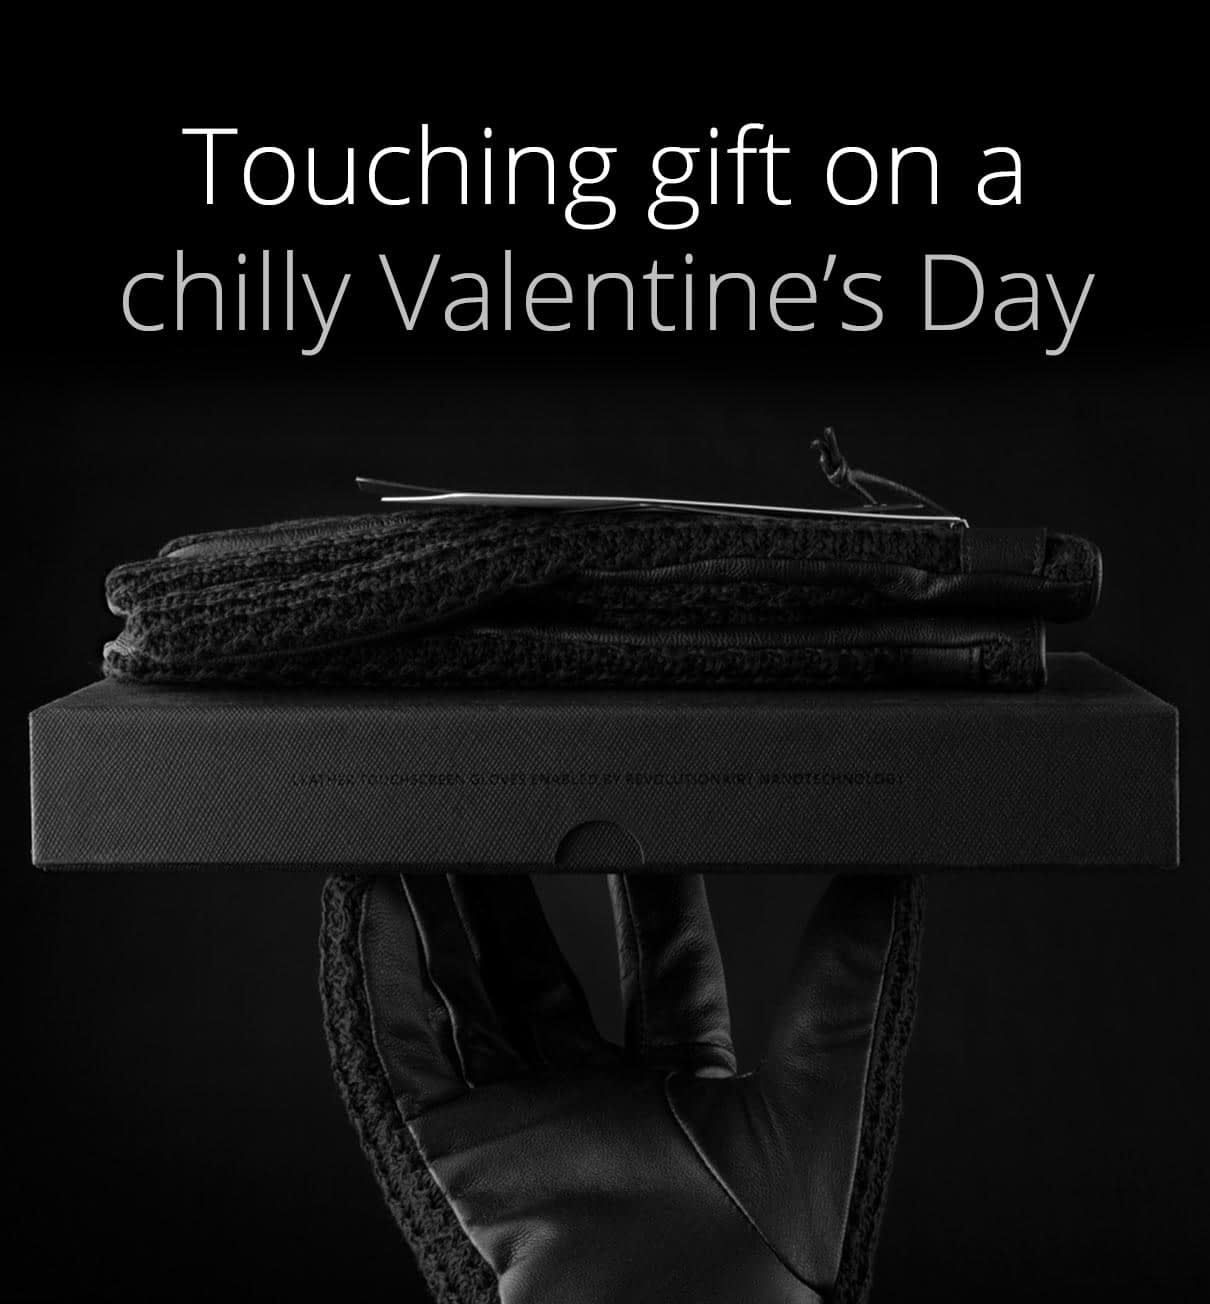 touching gift on a chilly valentines day